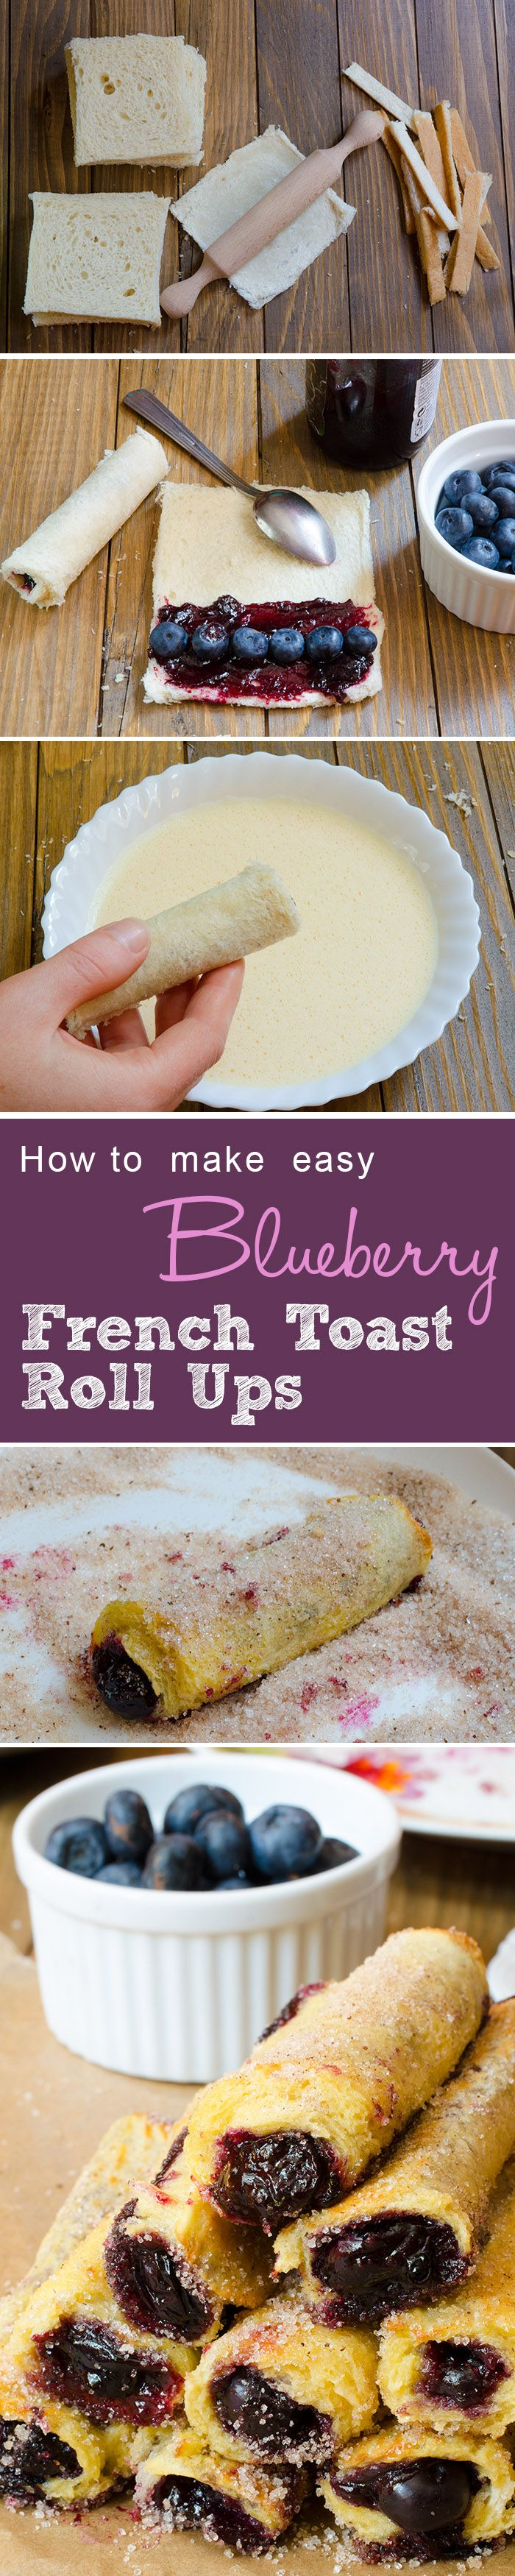 Imperfectly Perfect Blueberry French Toast Roll Ups - Easy to make breakfast recipe. #blueberry #breakfas #recipes